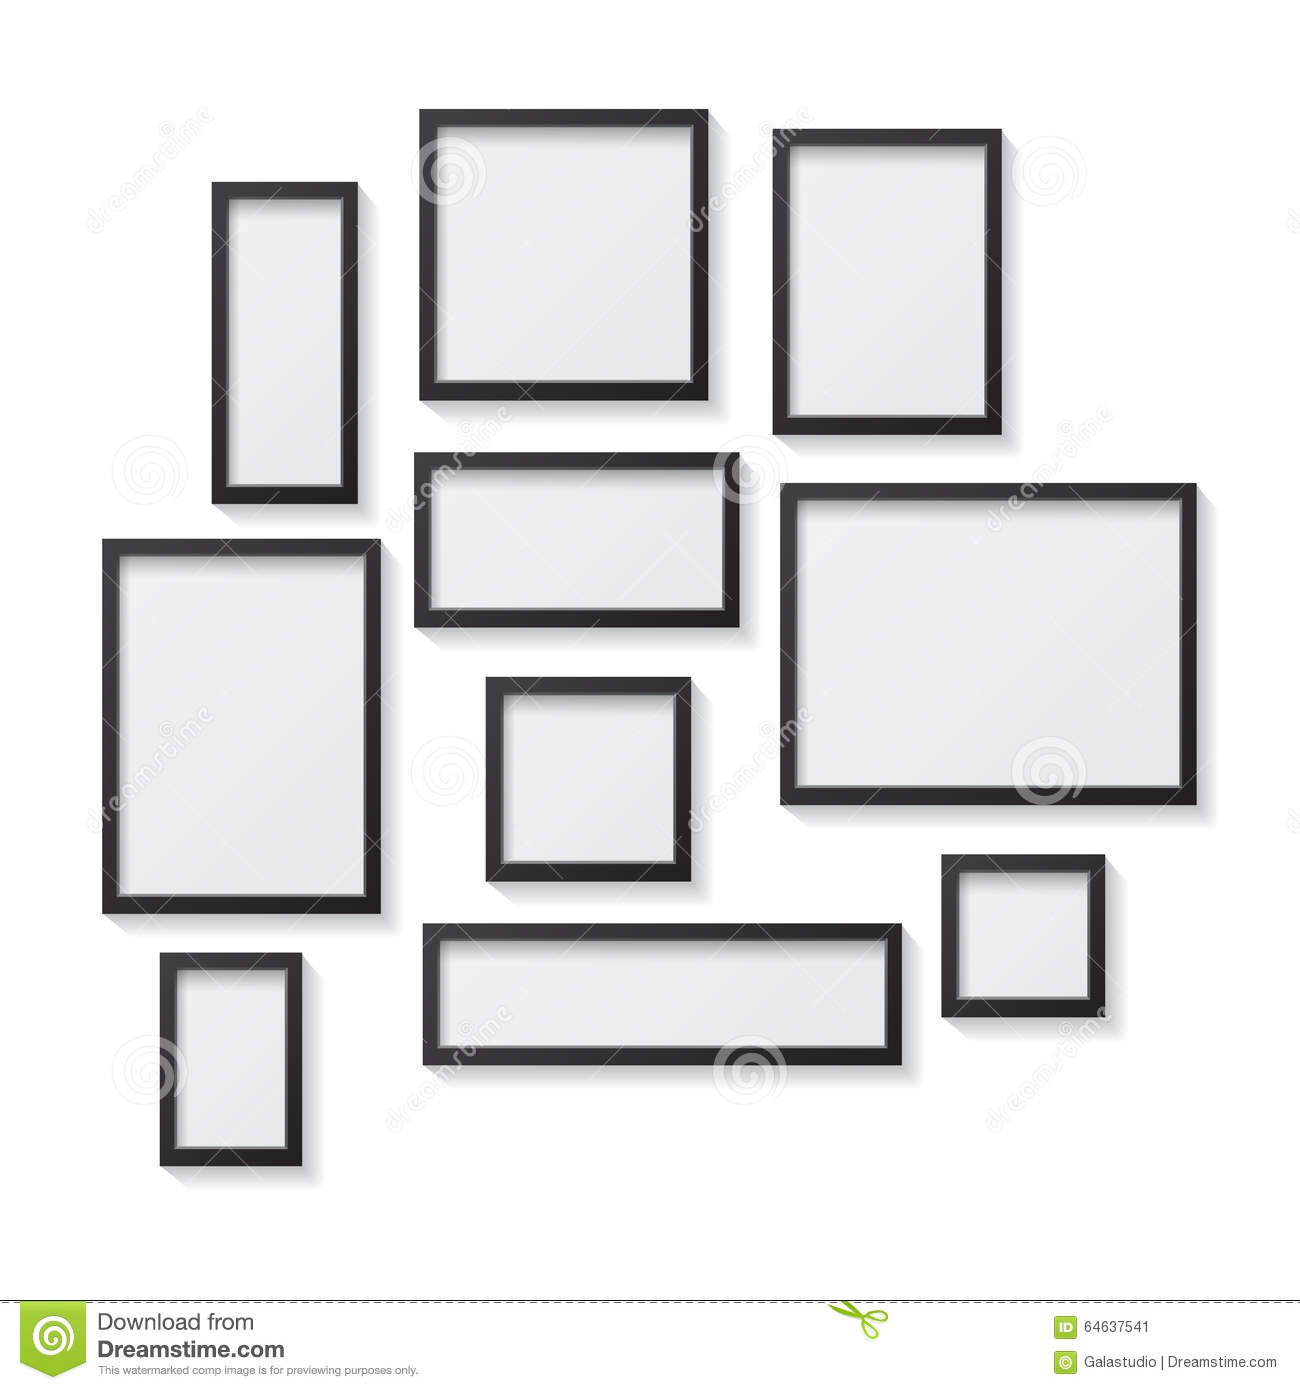 white blank picture frames hanging on white stock image 73111741. Black Bedroom Furniture Sets. Home Design Ideas